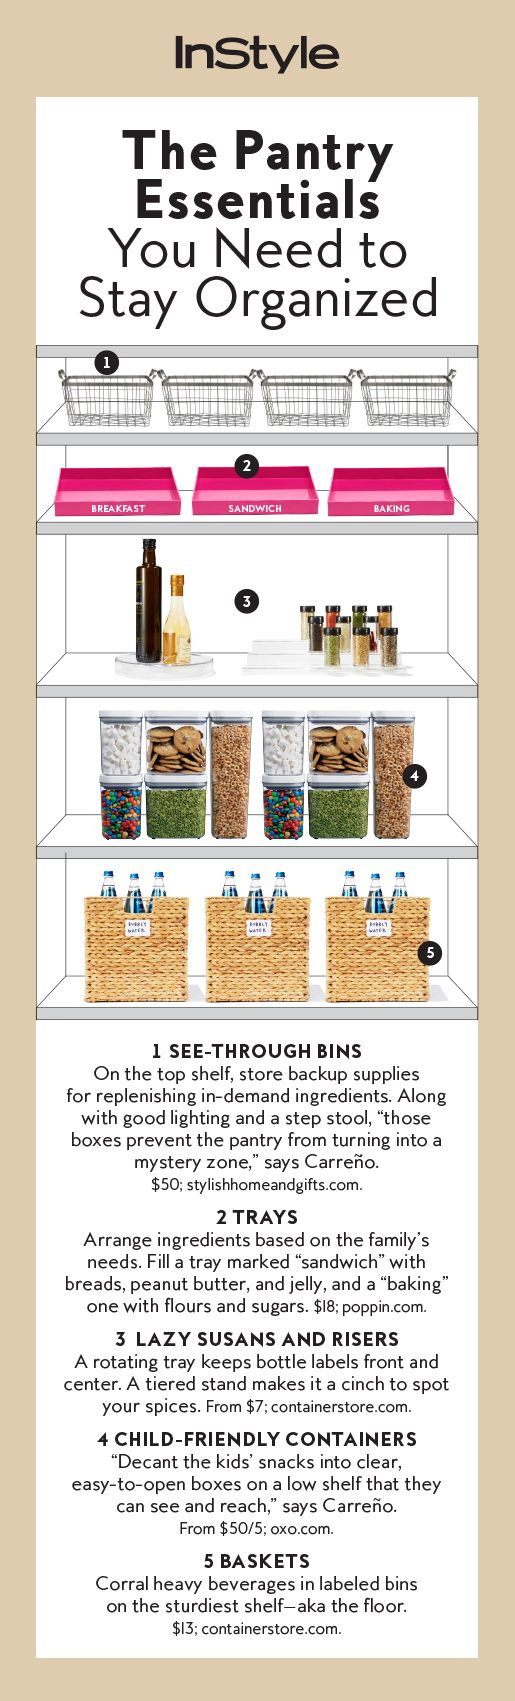 These pantry essentials will keep your kitchen organized.